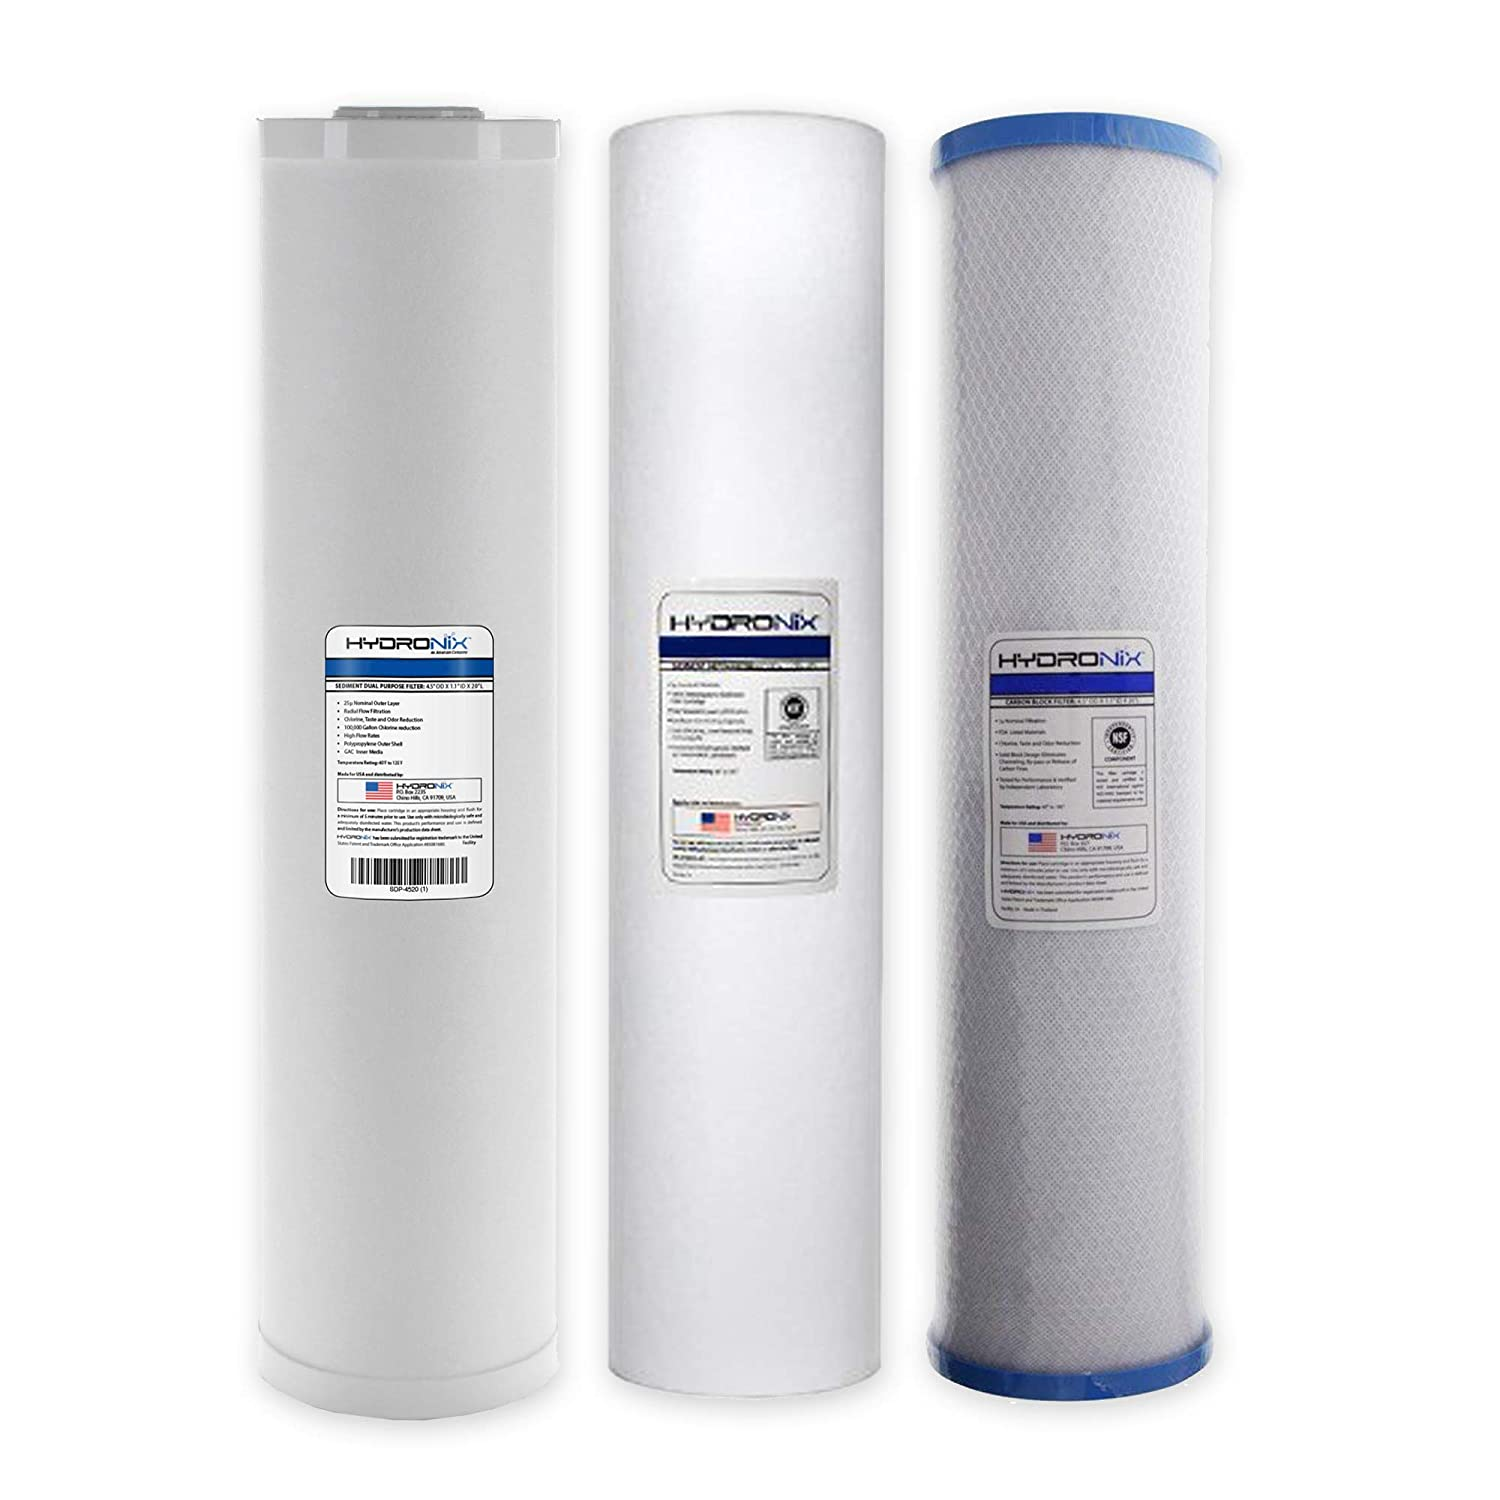 4.5 x 20 Sediment GAC Carbon Hydronix Big Blue Water Filters Pack of 3